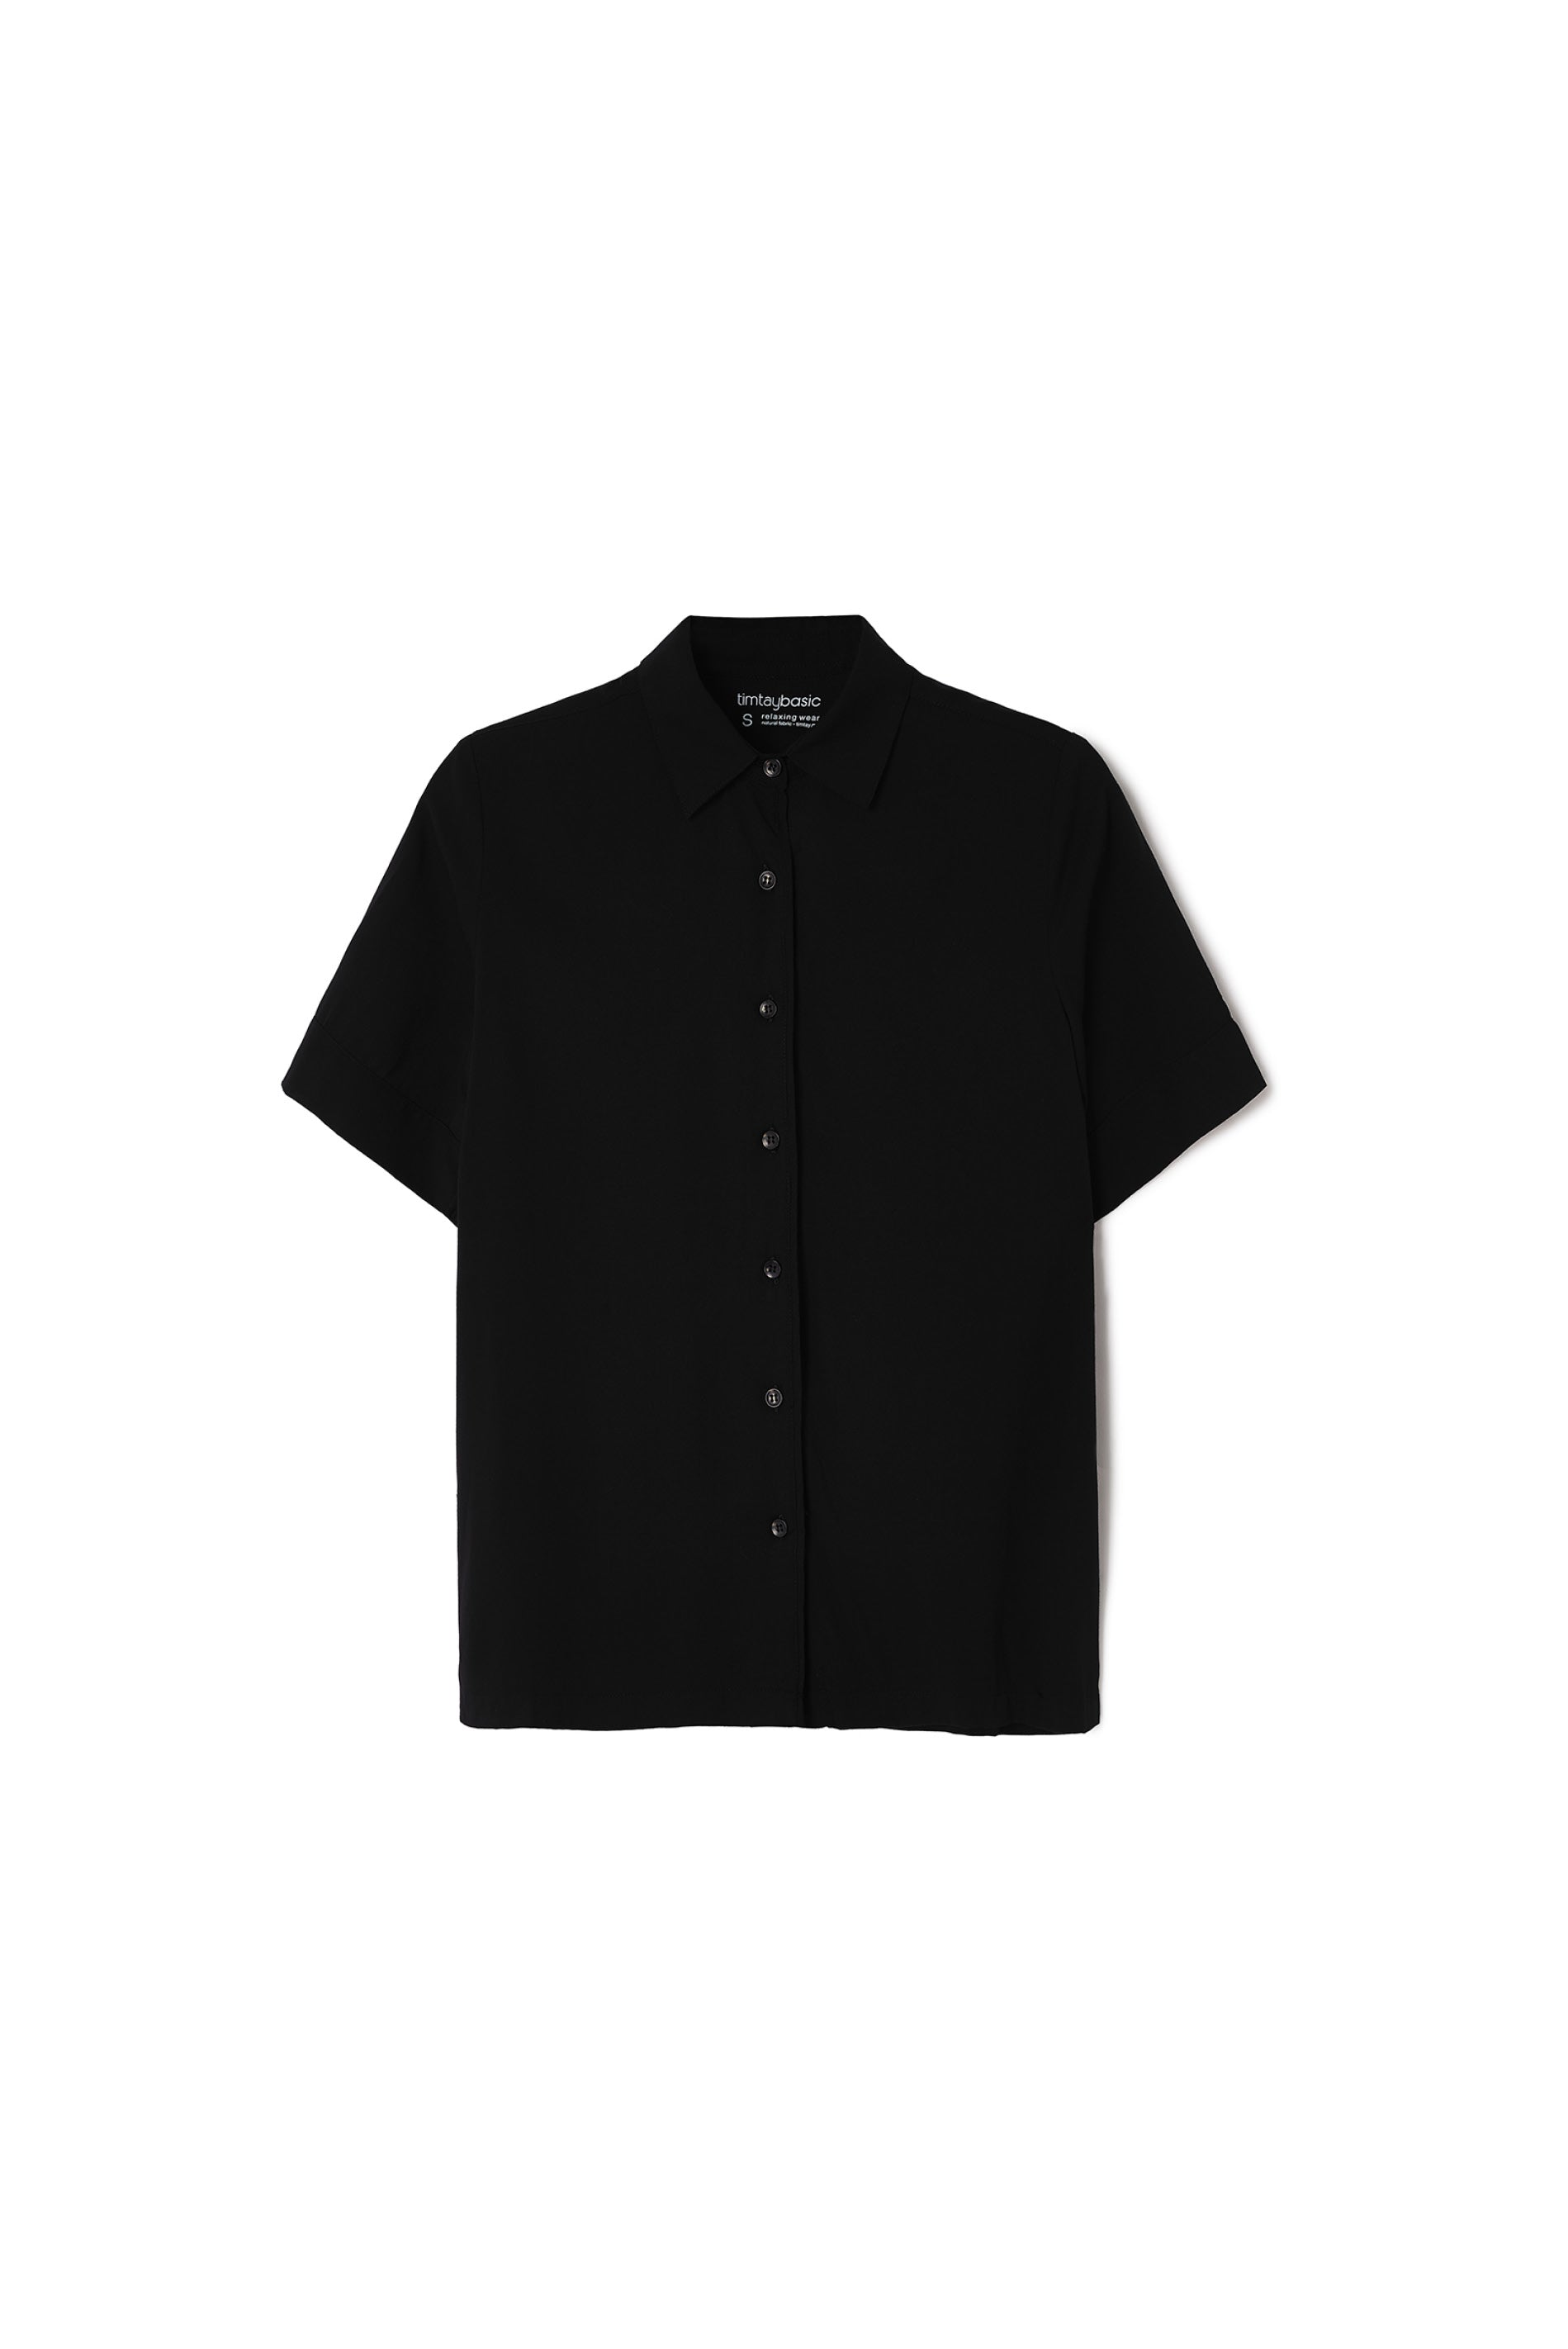 BS - W SHORT SLEEVES SHIRT BLACK